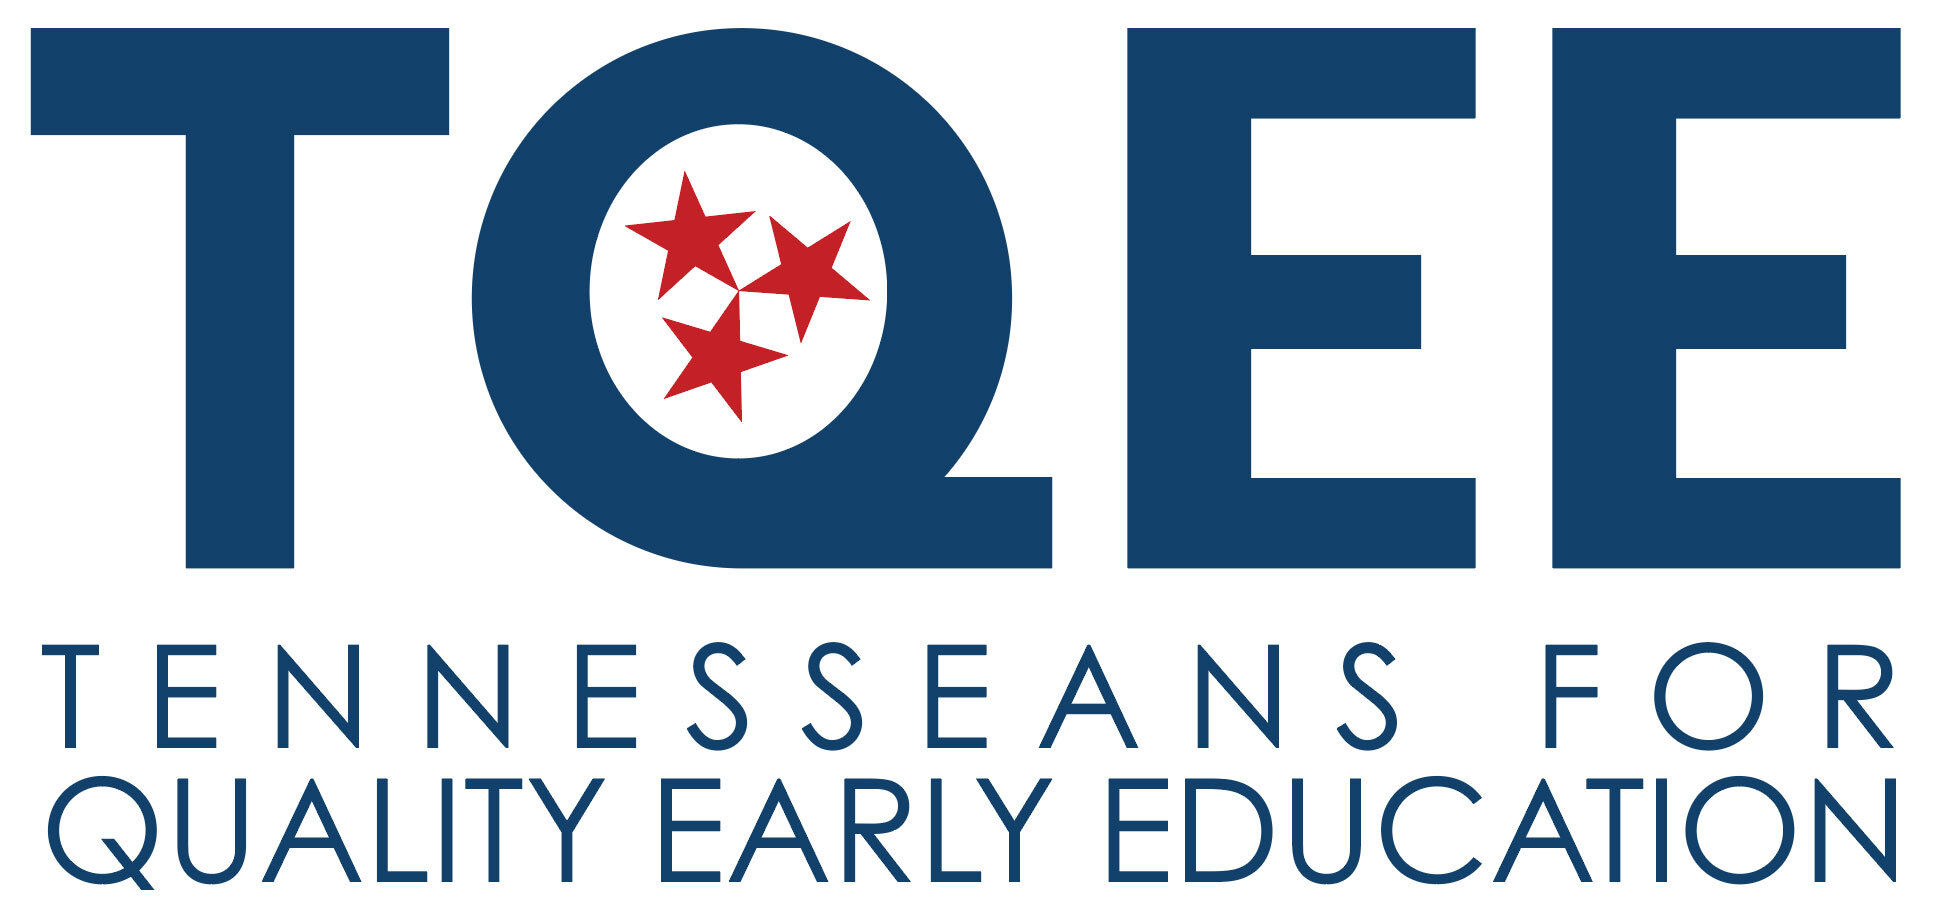 tennesseans-for-quality-early-education-policy-and-research_processed_53cf6d0ea4e344464a2c8658608e64cd6325c19be86d6ba23ac42809e22c14c9_logo